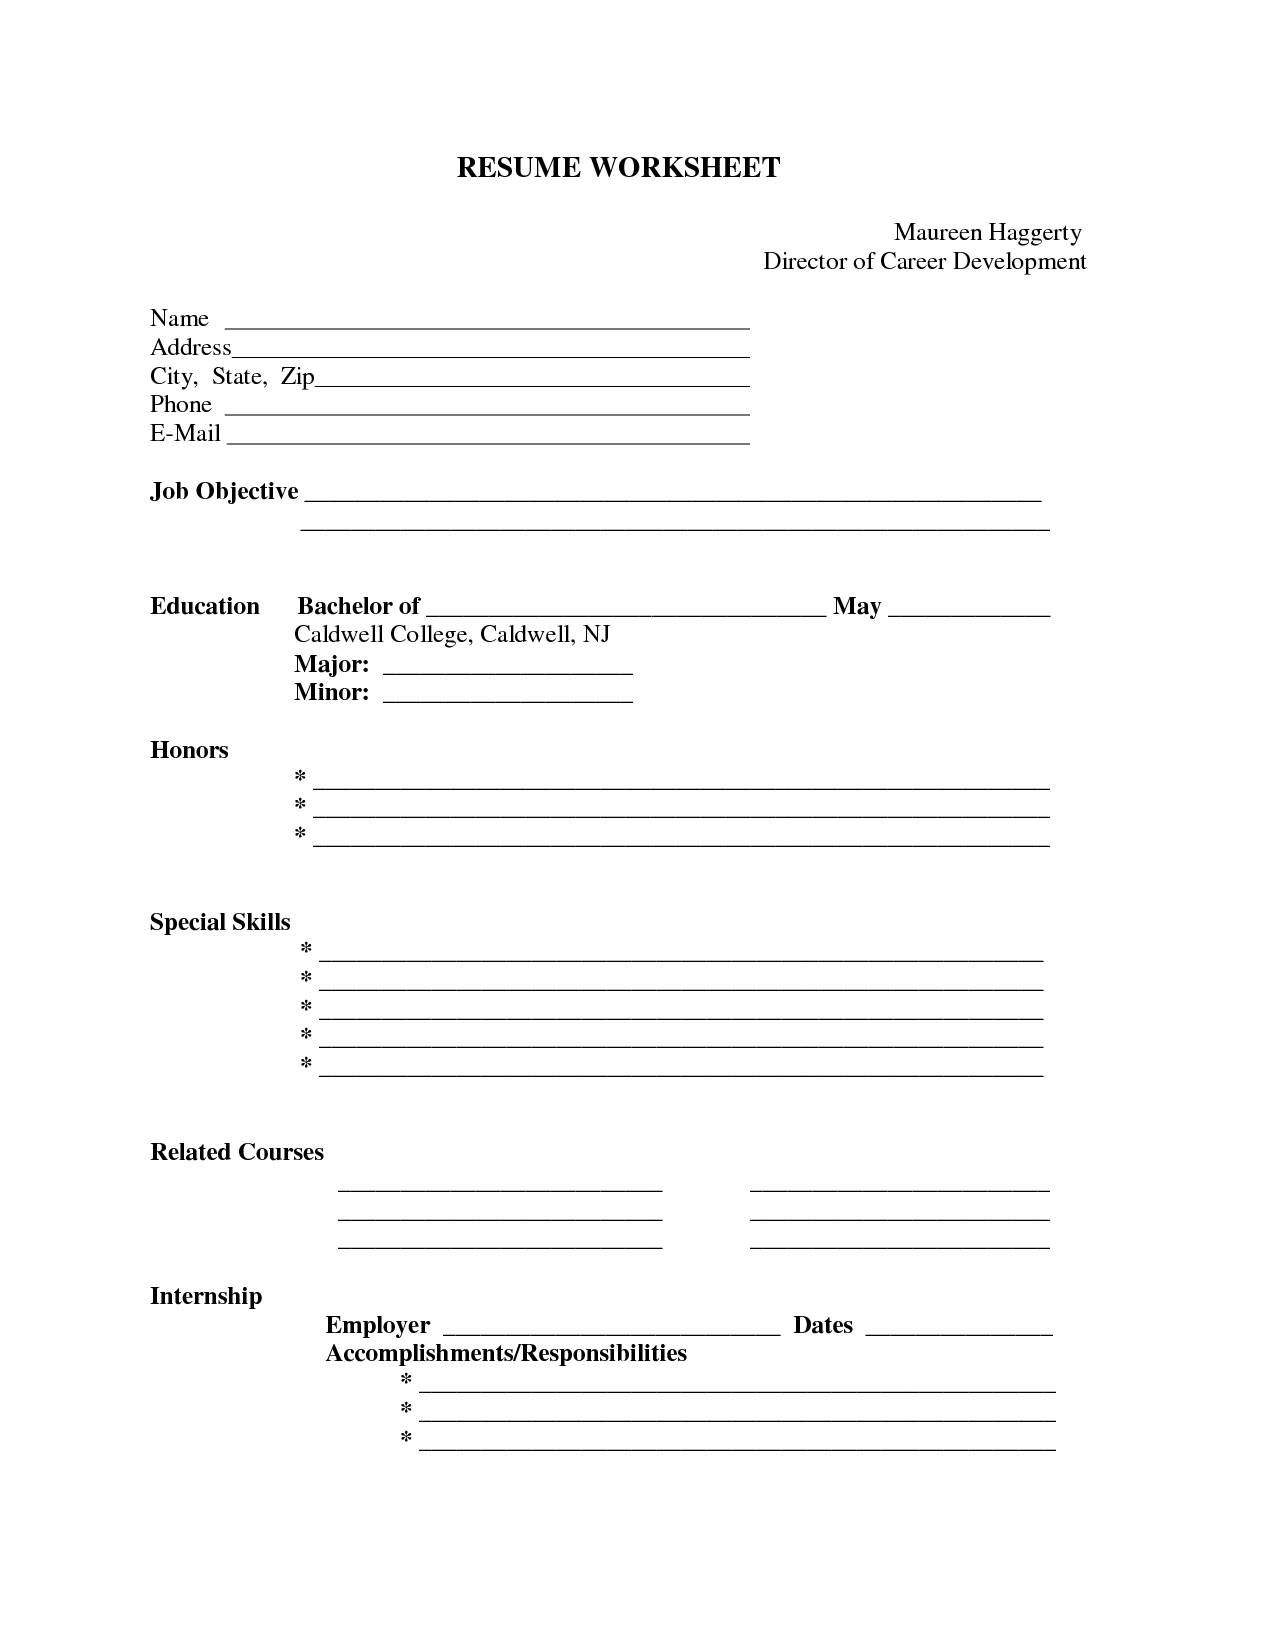 Blank Resume Template Inspiration Free Printable Blank Resume Forms  Httpwwwresumecareer